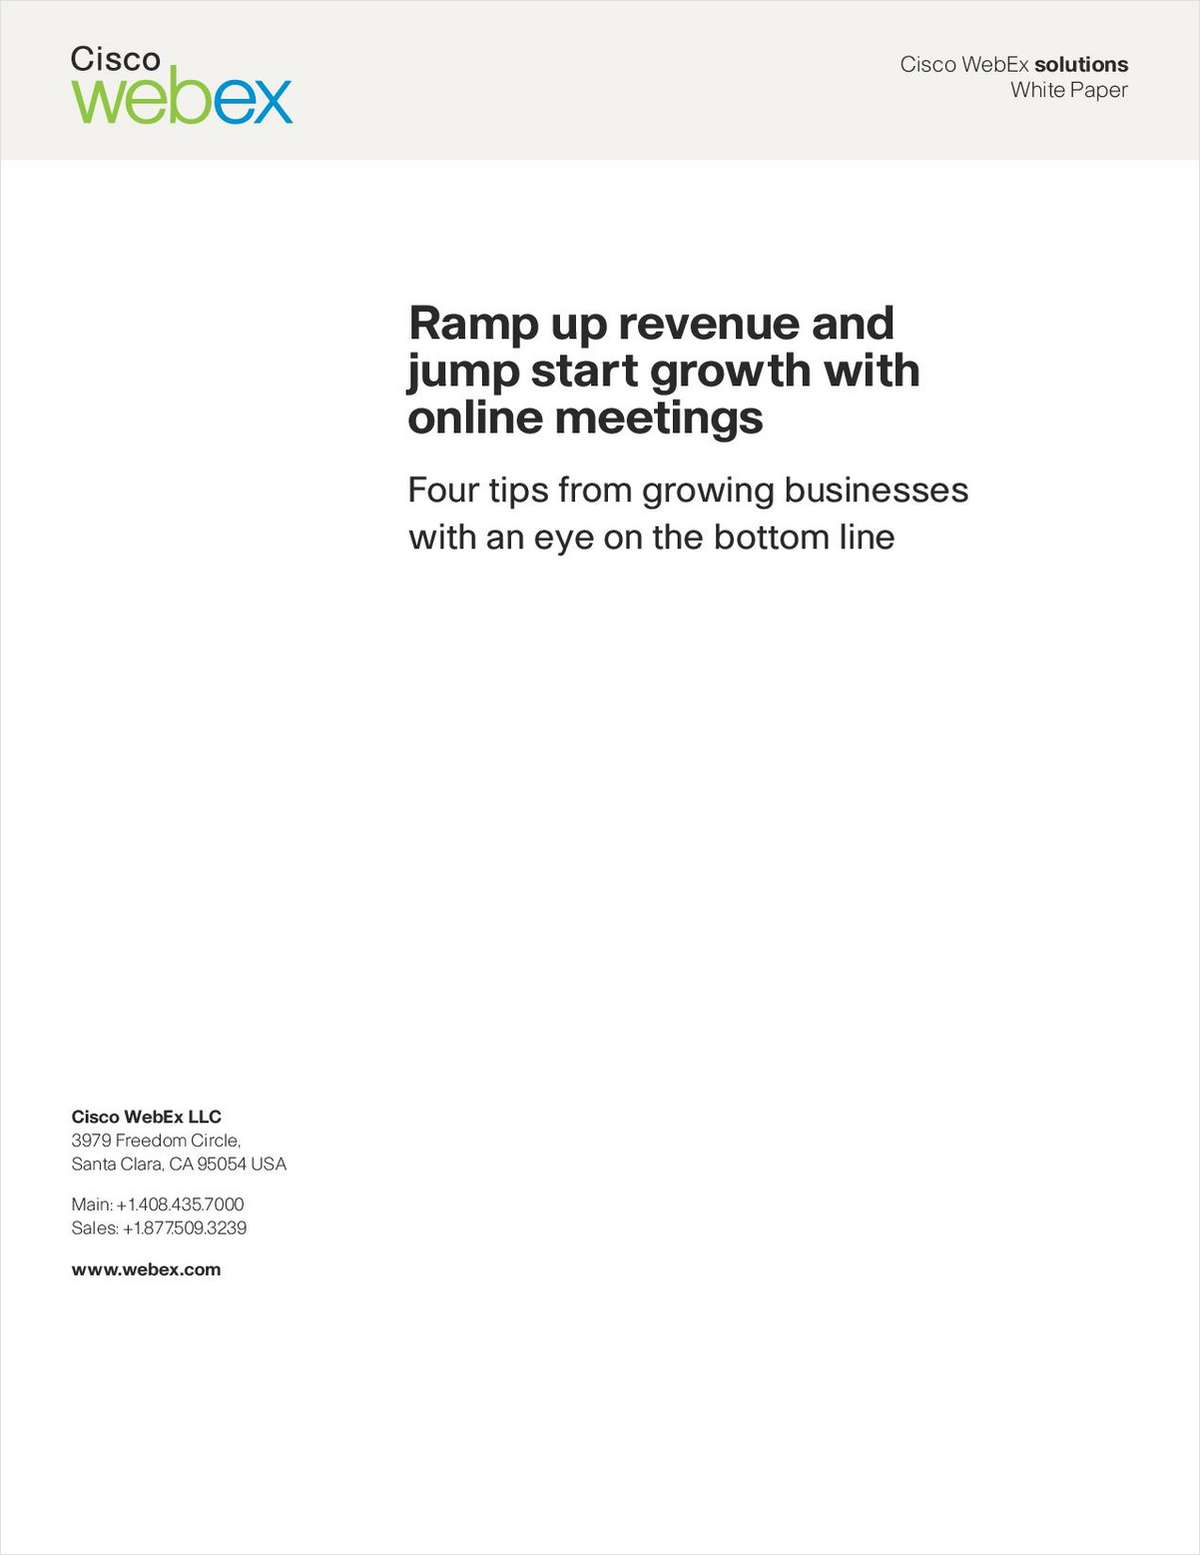 Ramp Up Revenue and Jump Start Growth with Online Meetings